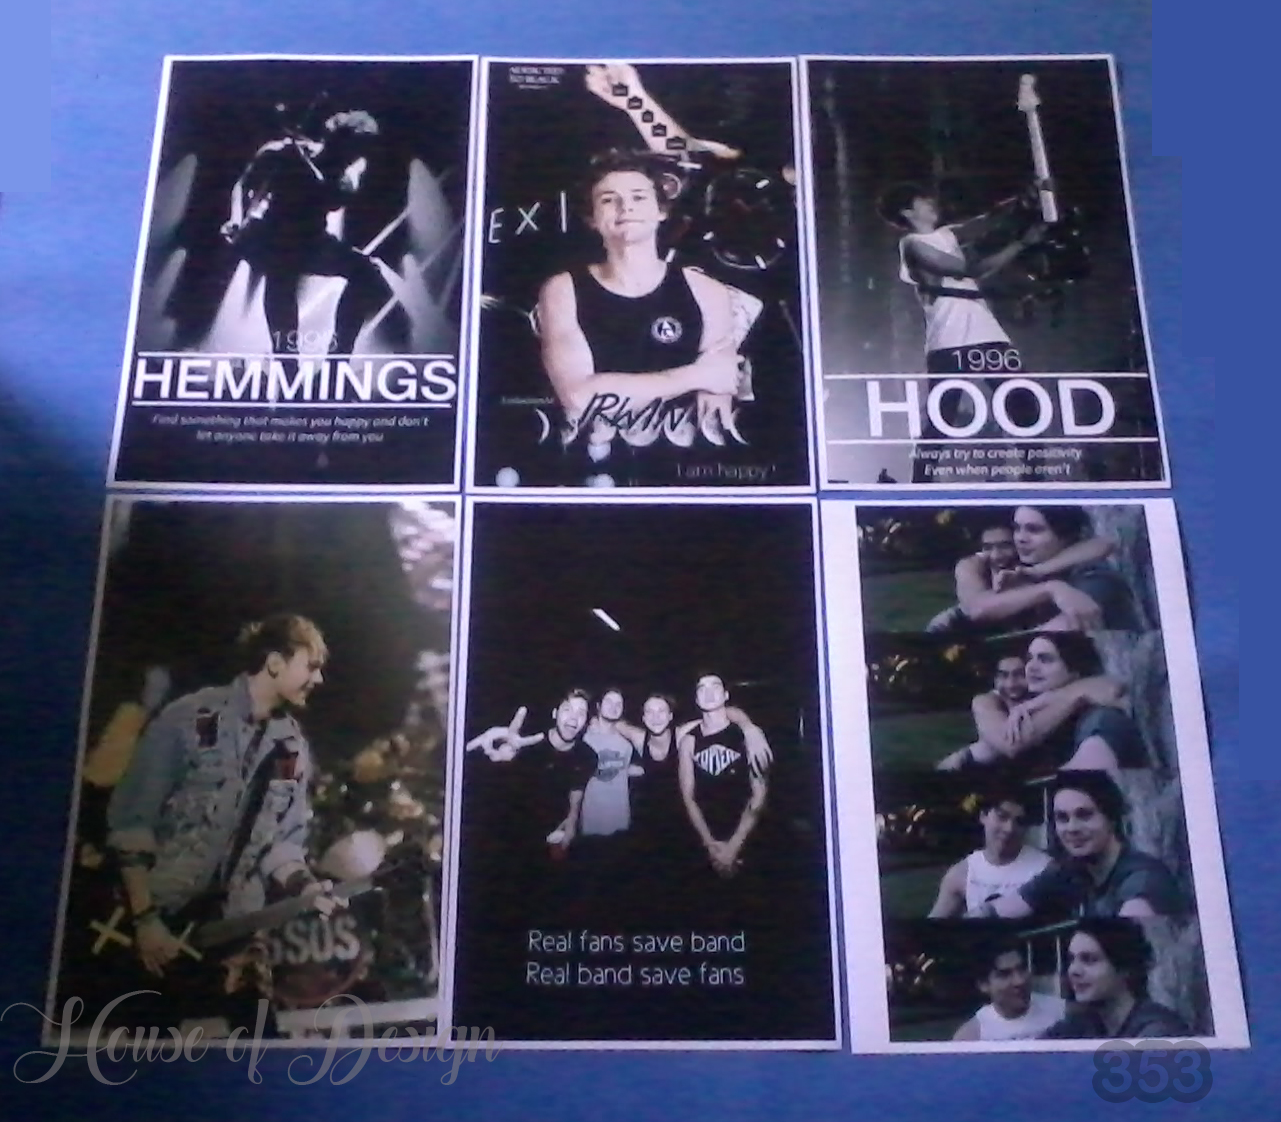 POSTER, POSTER CUSTOM, POSTER A3, POSTER A4, POSTER A5, POSTER CUSTOM SIZE, POSTER BAND, POSTER SINGER, POSTER FIVE SECONDS OF SUMMER, POSTER 5SOS, POSTER 5SECOND OF SUMMER, POSTER DRUMMER BAND, POSTER MUSICAL, POSTER KONSER, POSTER HEMMINGS, POSTER HOOD